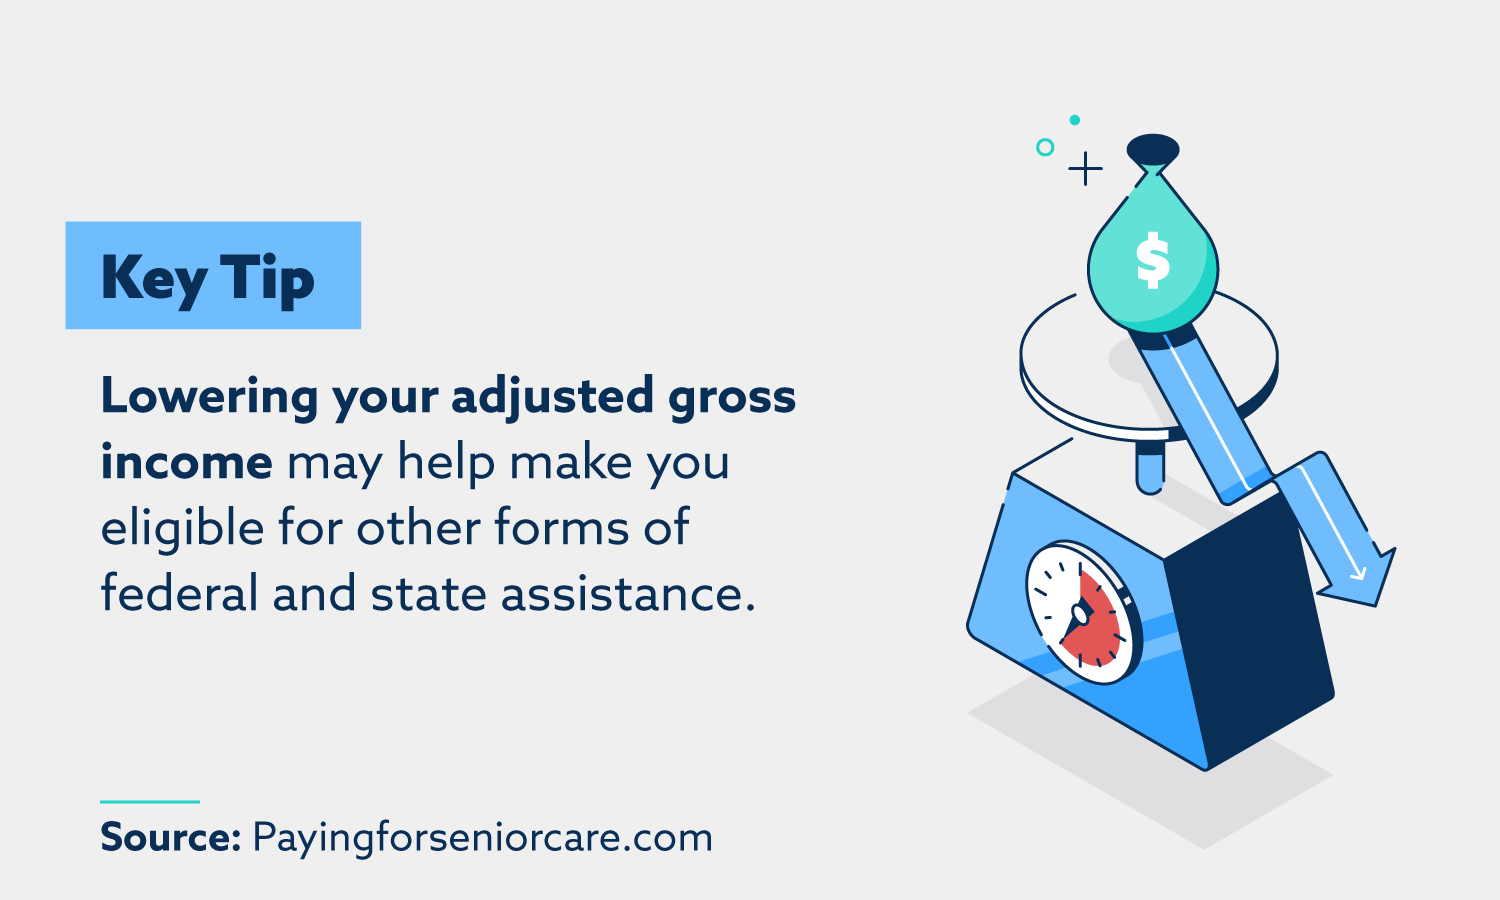 Lowering your adjusted gross income may help make you eligible for other forms of federal assistance.